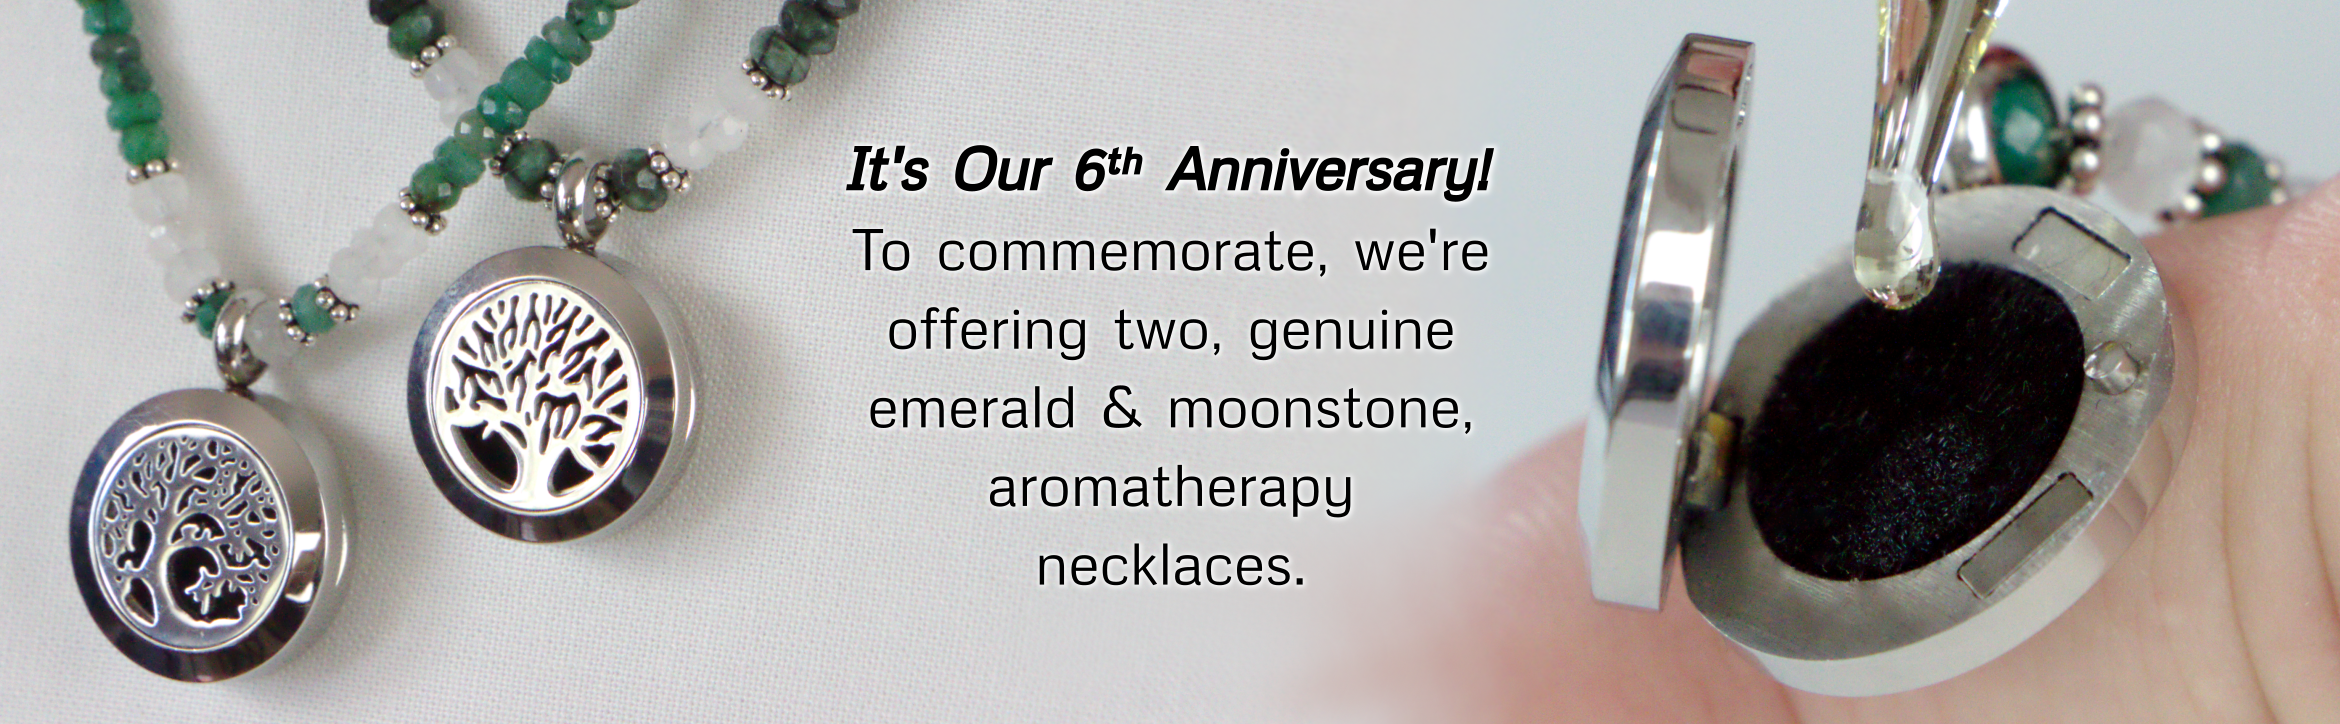 Silver Botanicals 6th Anniversary Special Offer